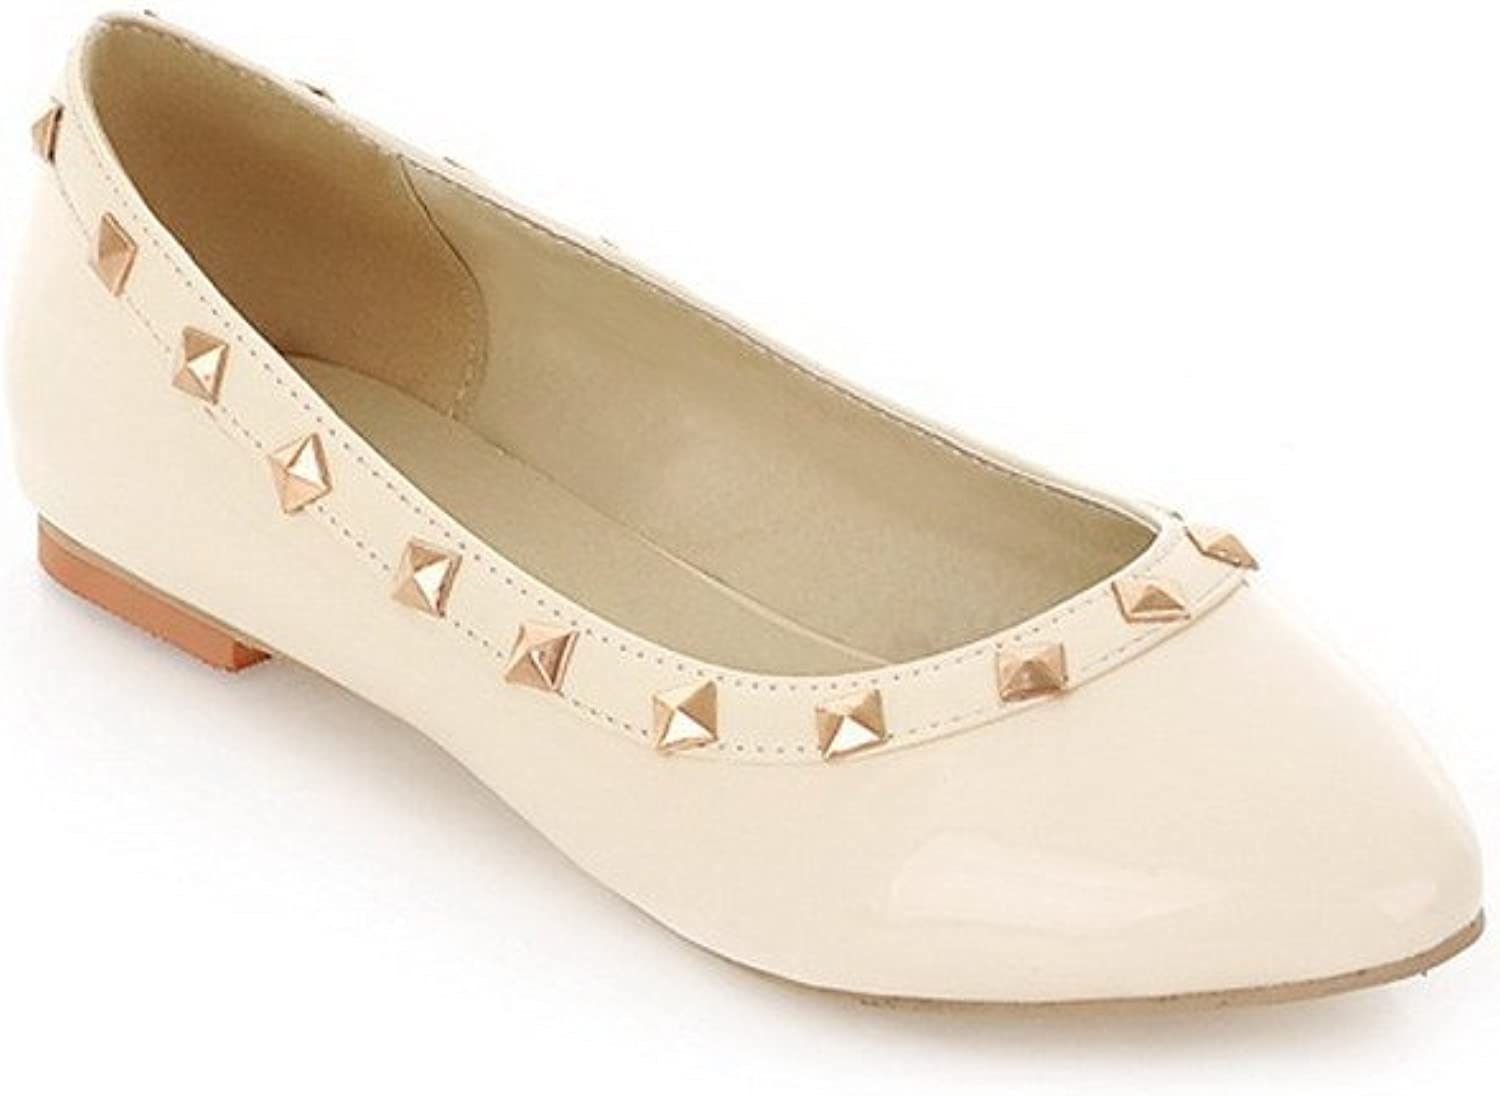 WeenFashion Women's Closed Round Toe Patent Leather PU Solid Flats whith Rivet, Beige, 10 B(M) US